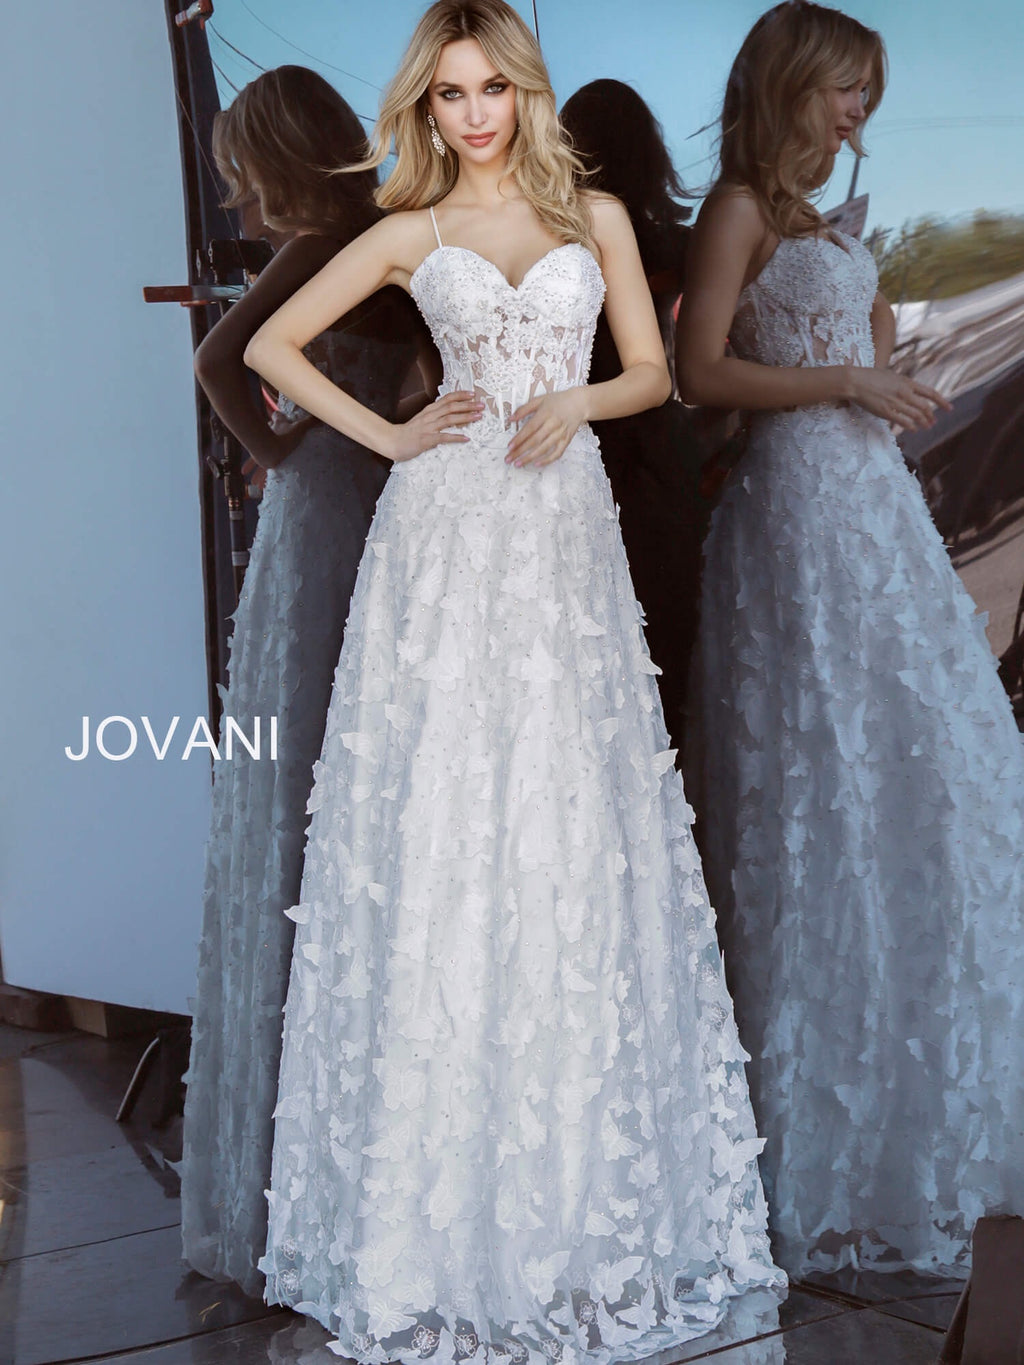 JOVANI 54969 Floral Appliqué Evening Dress - CYC Boutique